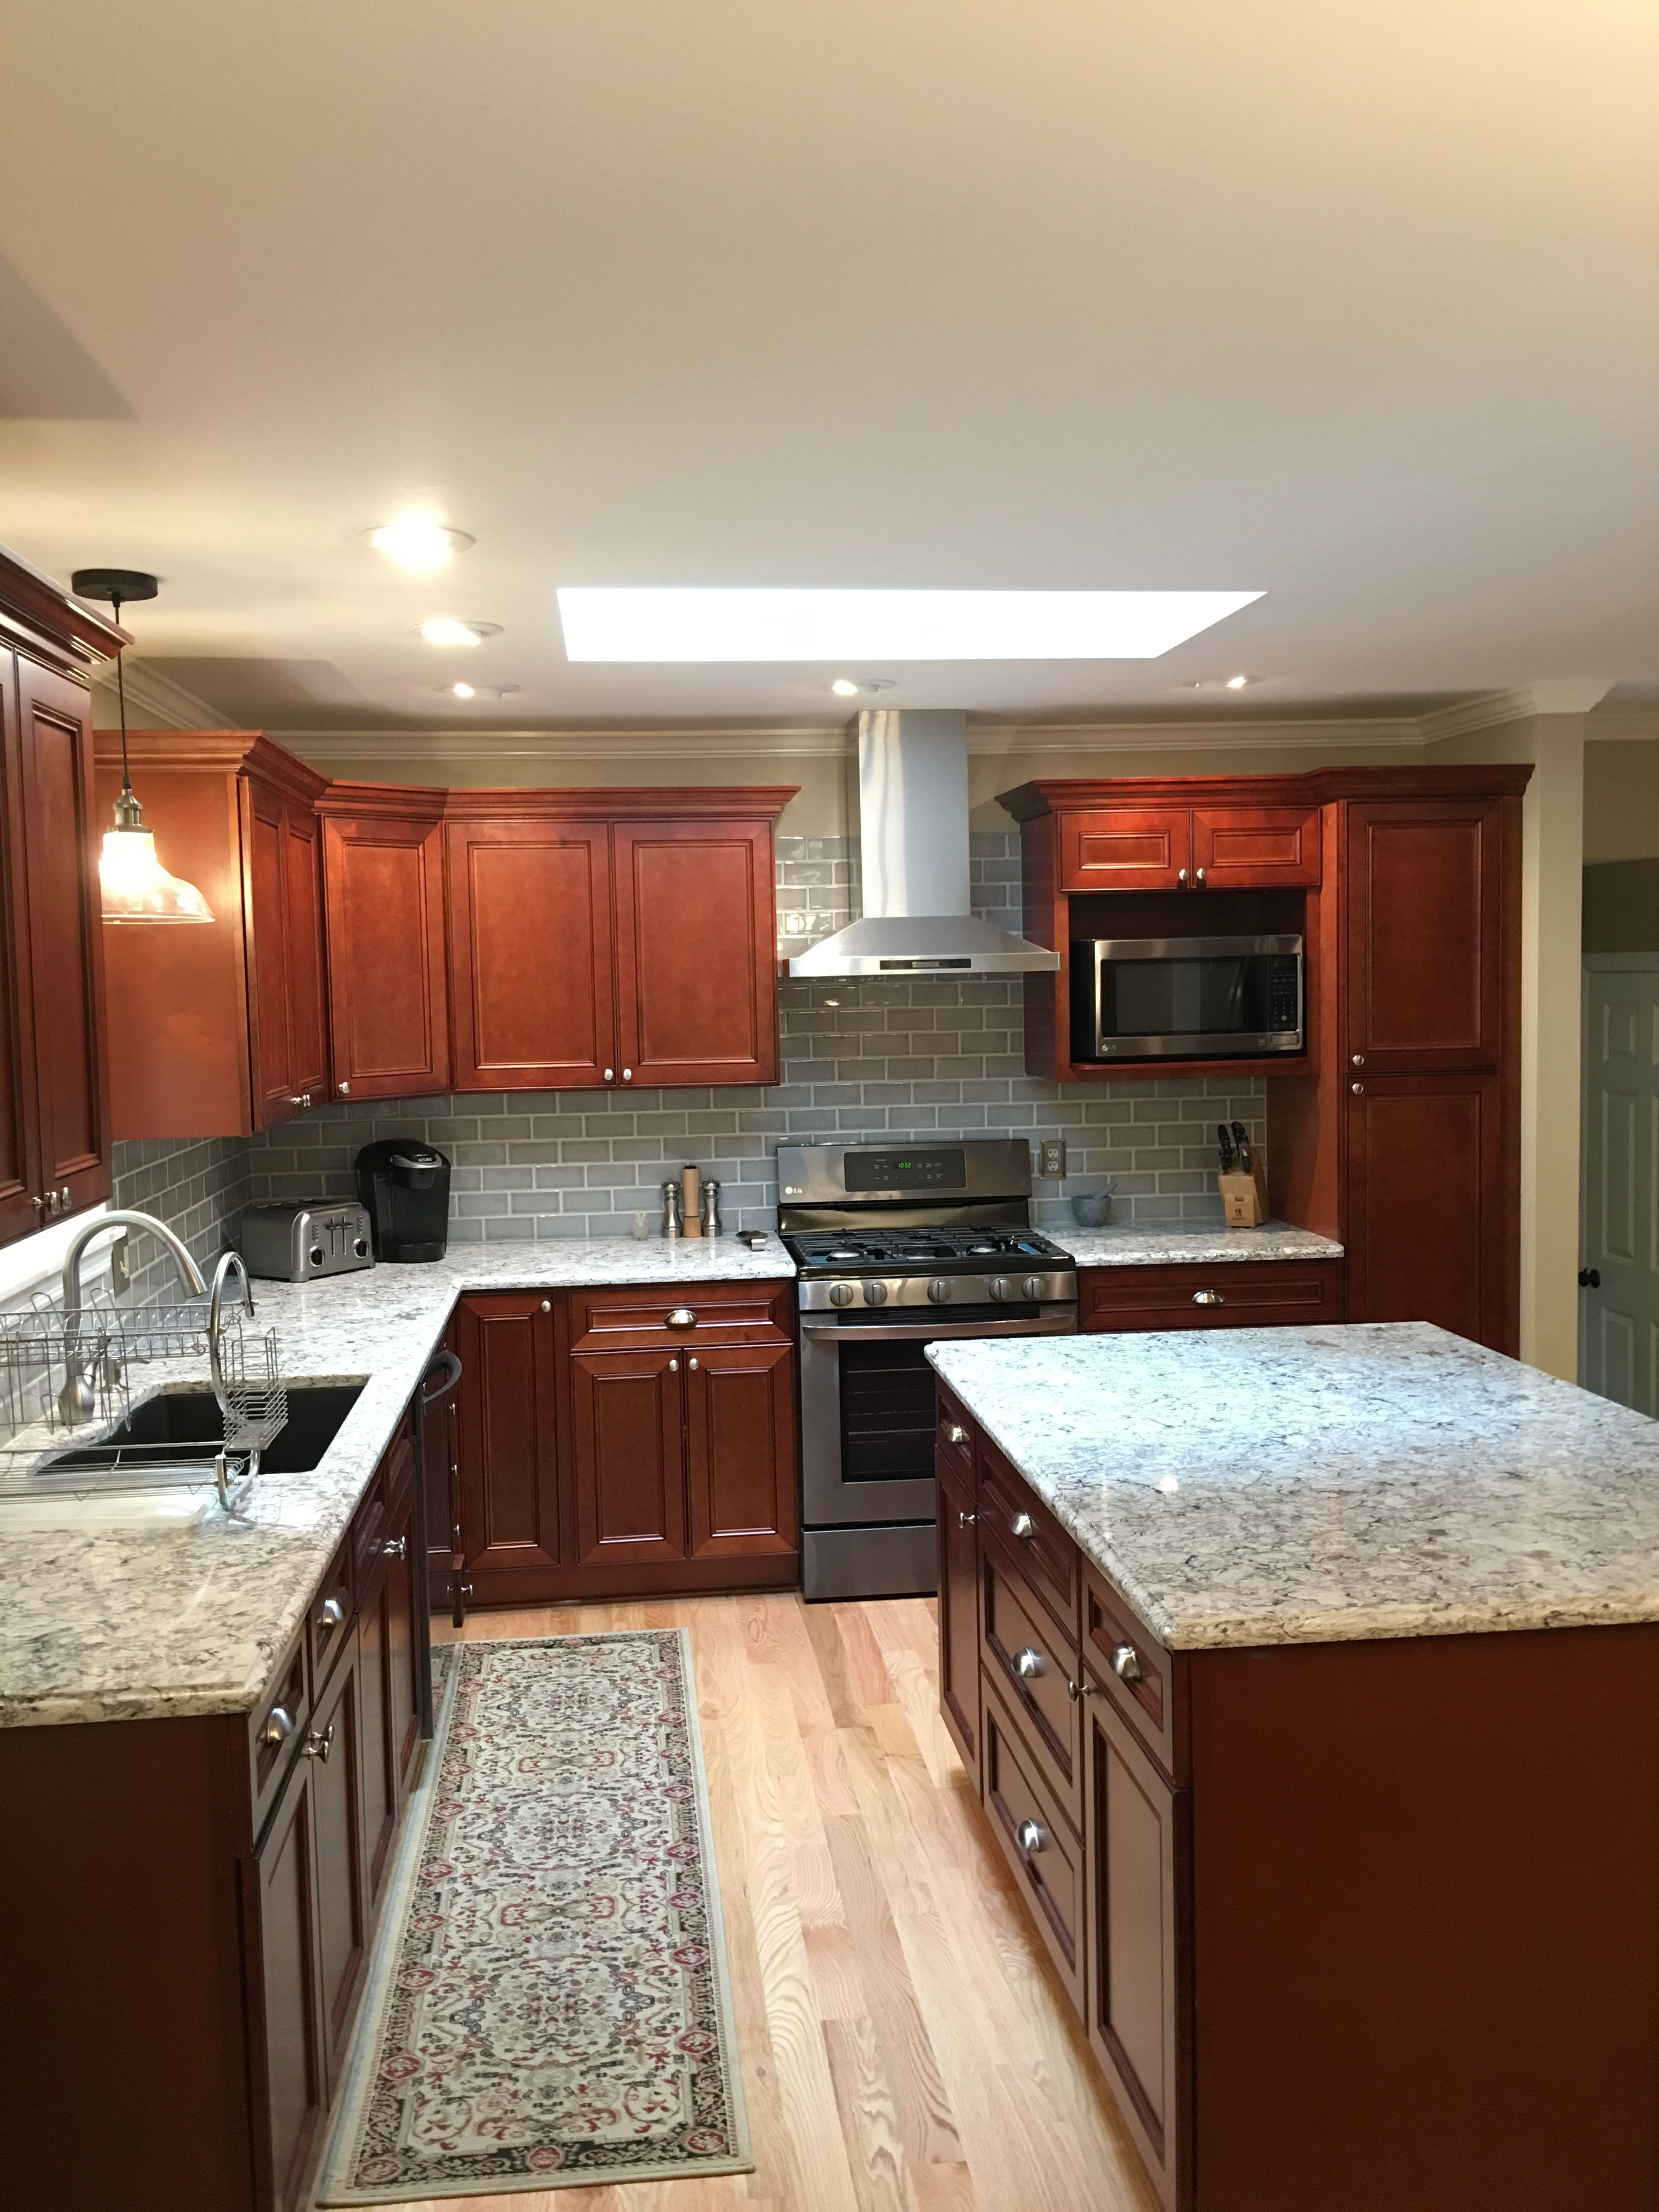 Best Of Kitchen Cabinets Guelph The Awesome And Also Interesting Kitchen Cabinets G Cherry Cabinets Kitchen Cherry Wood Kitchen Cabinets Cherry Wood Kitchens